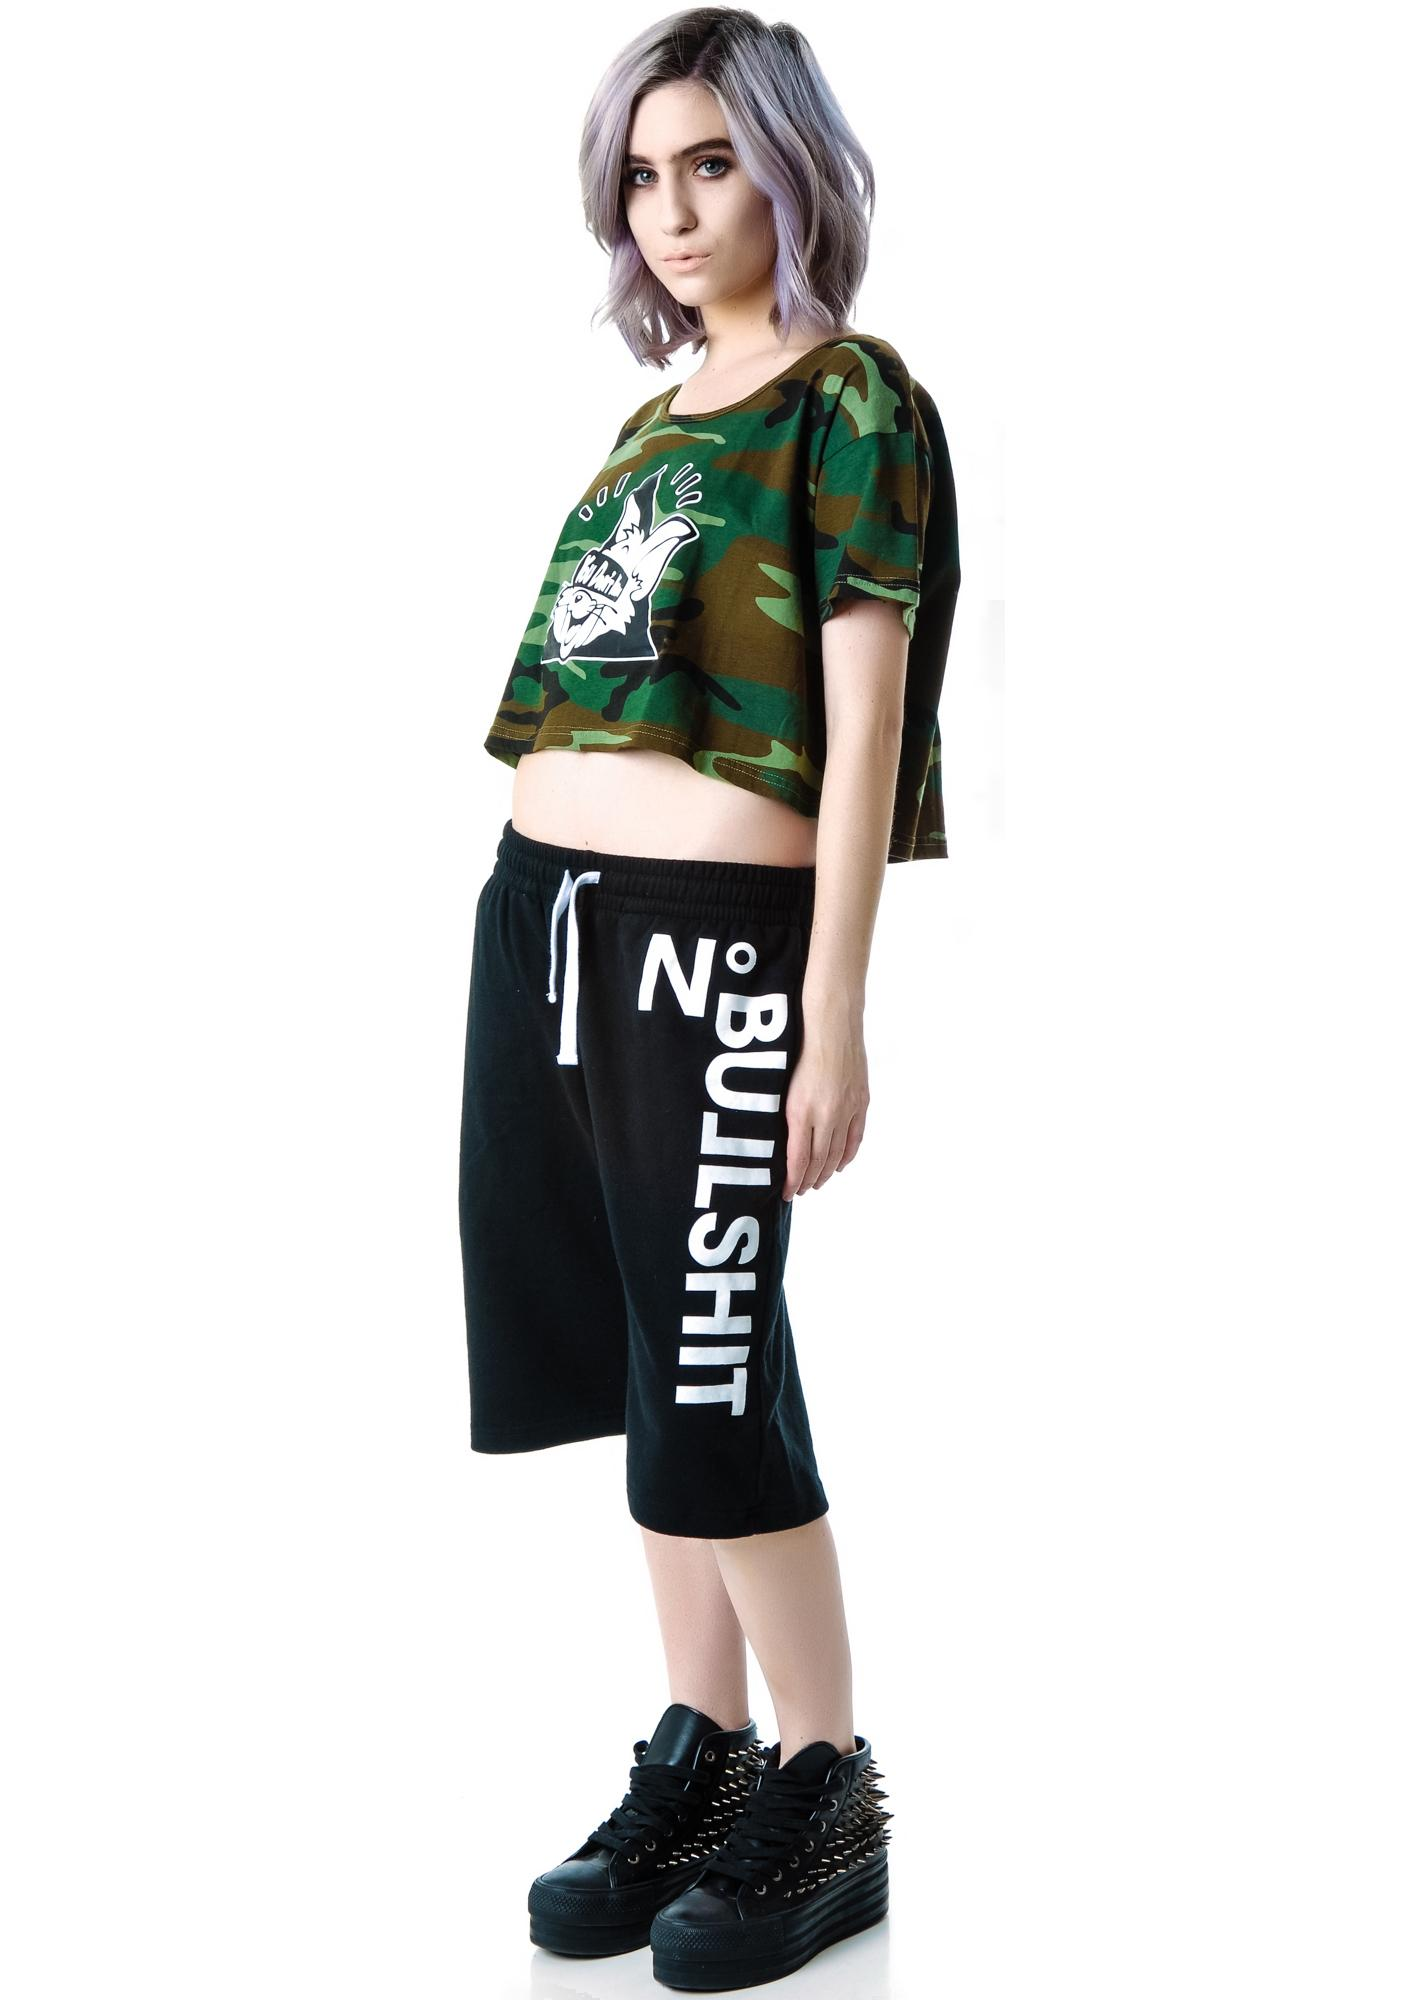 Joyrich You Don't Know My Name Short Tee